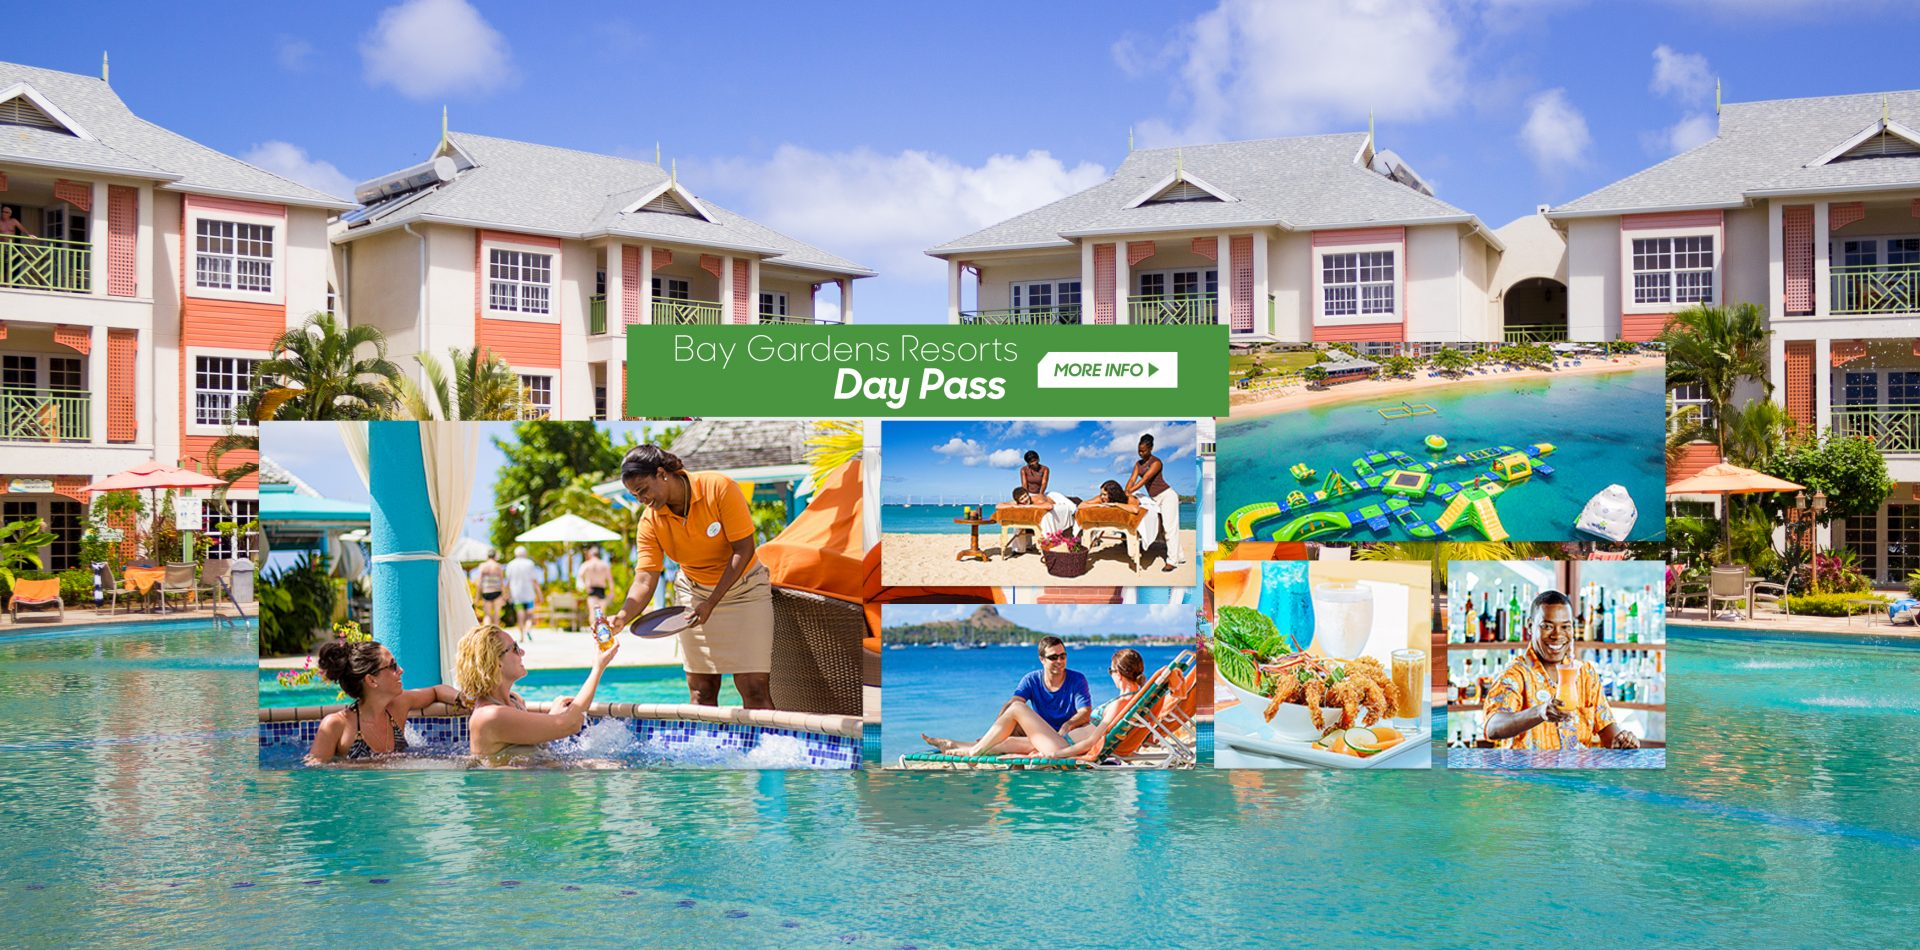 Bay Gardens Resorts Authentic Hotels Resorts in St Lucia